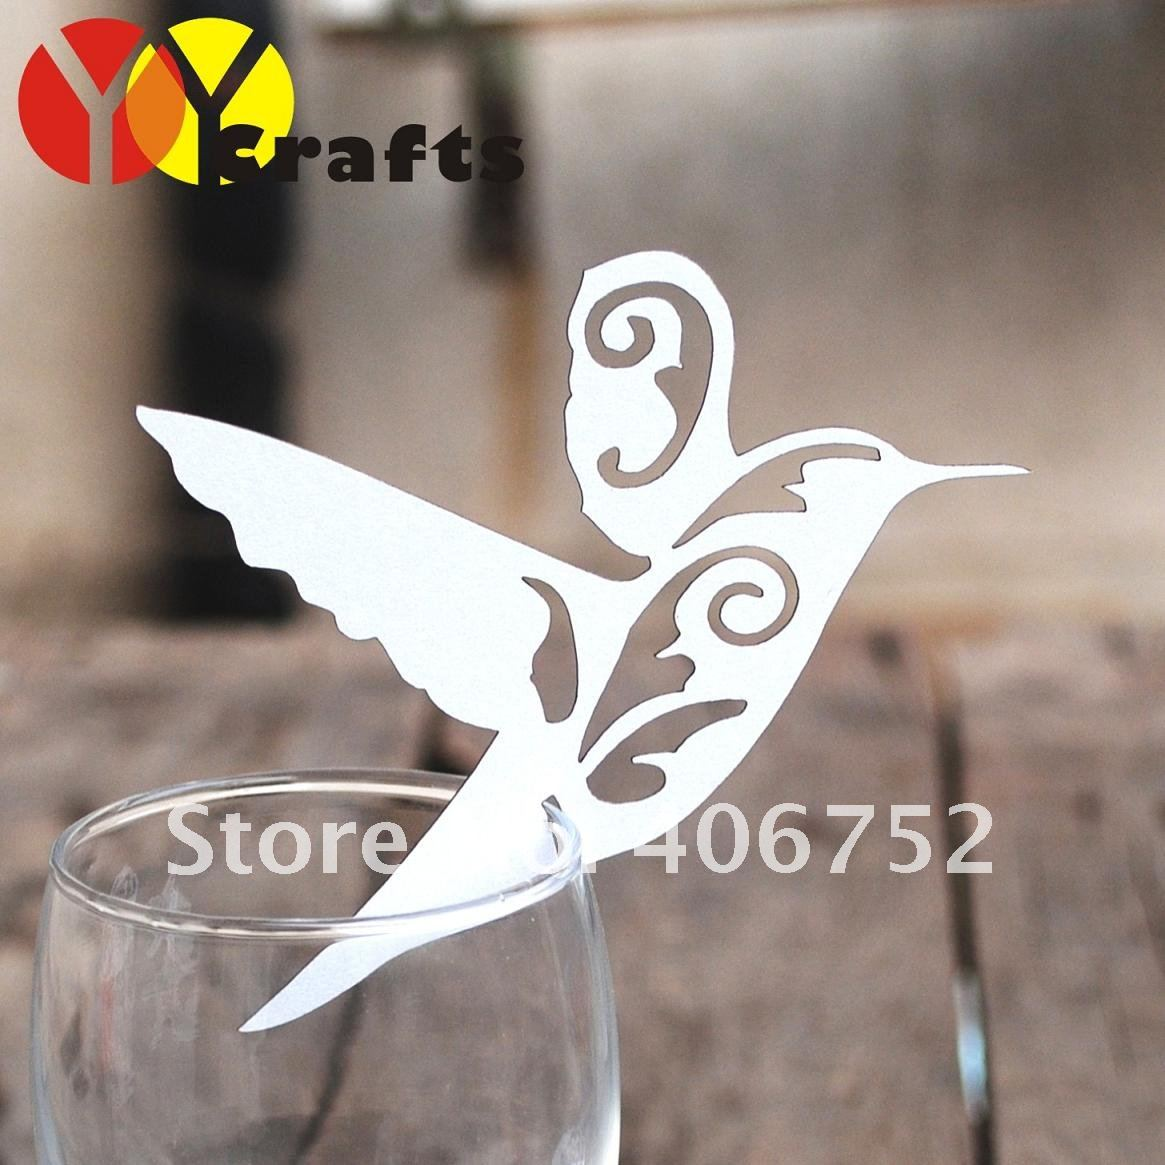 2015 yoyocraft Laser cutting bird shape place card holder